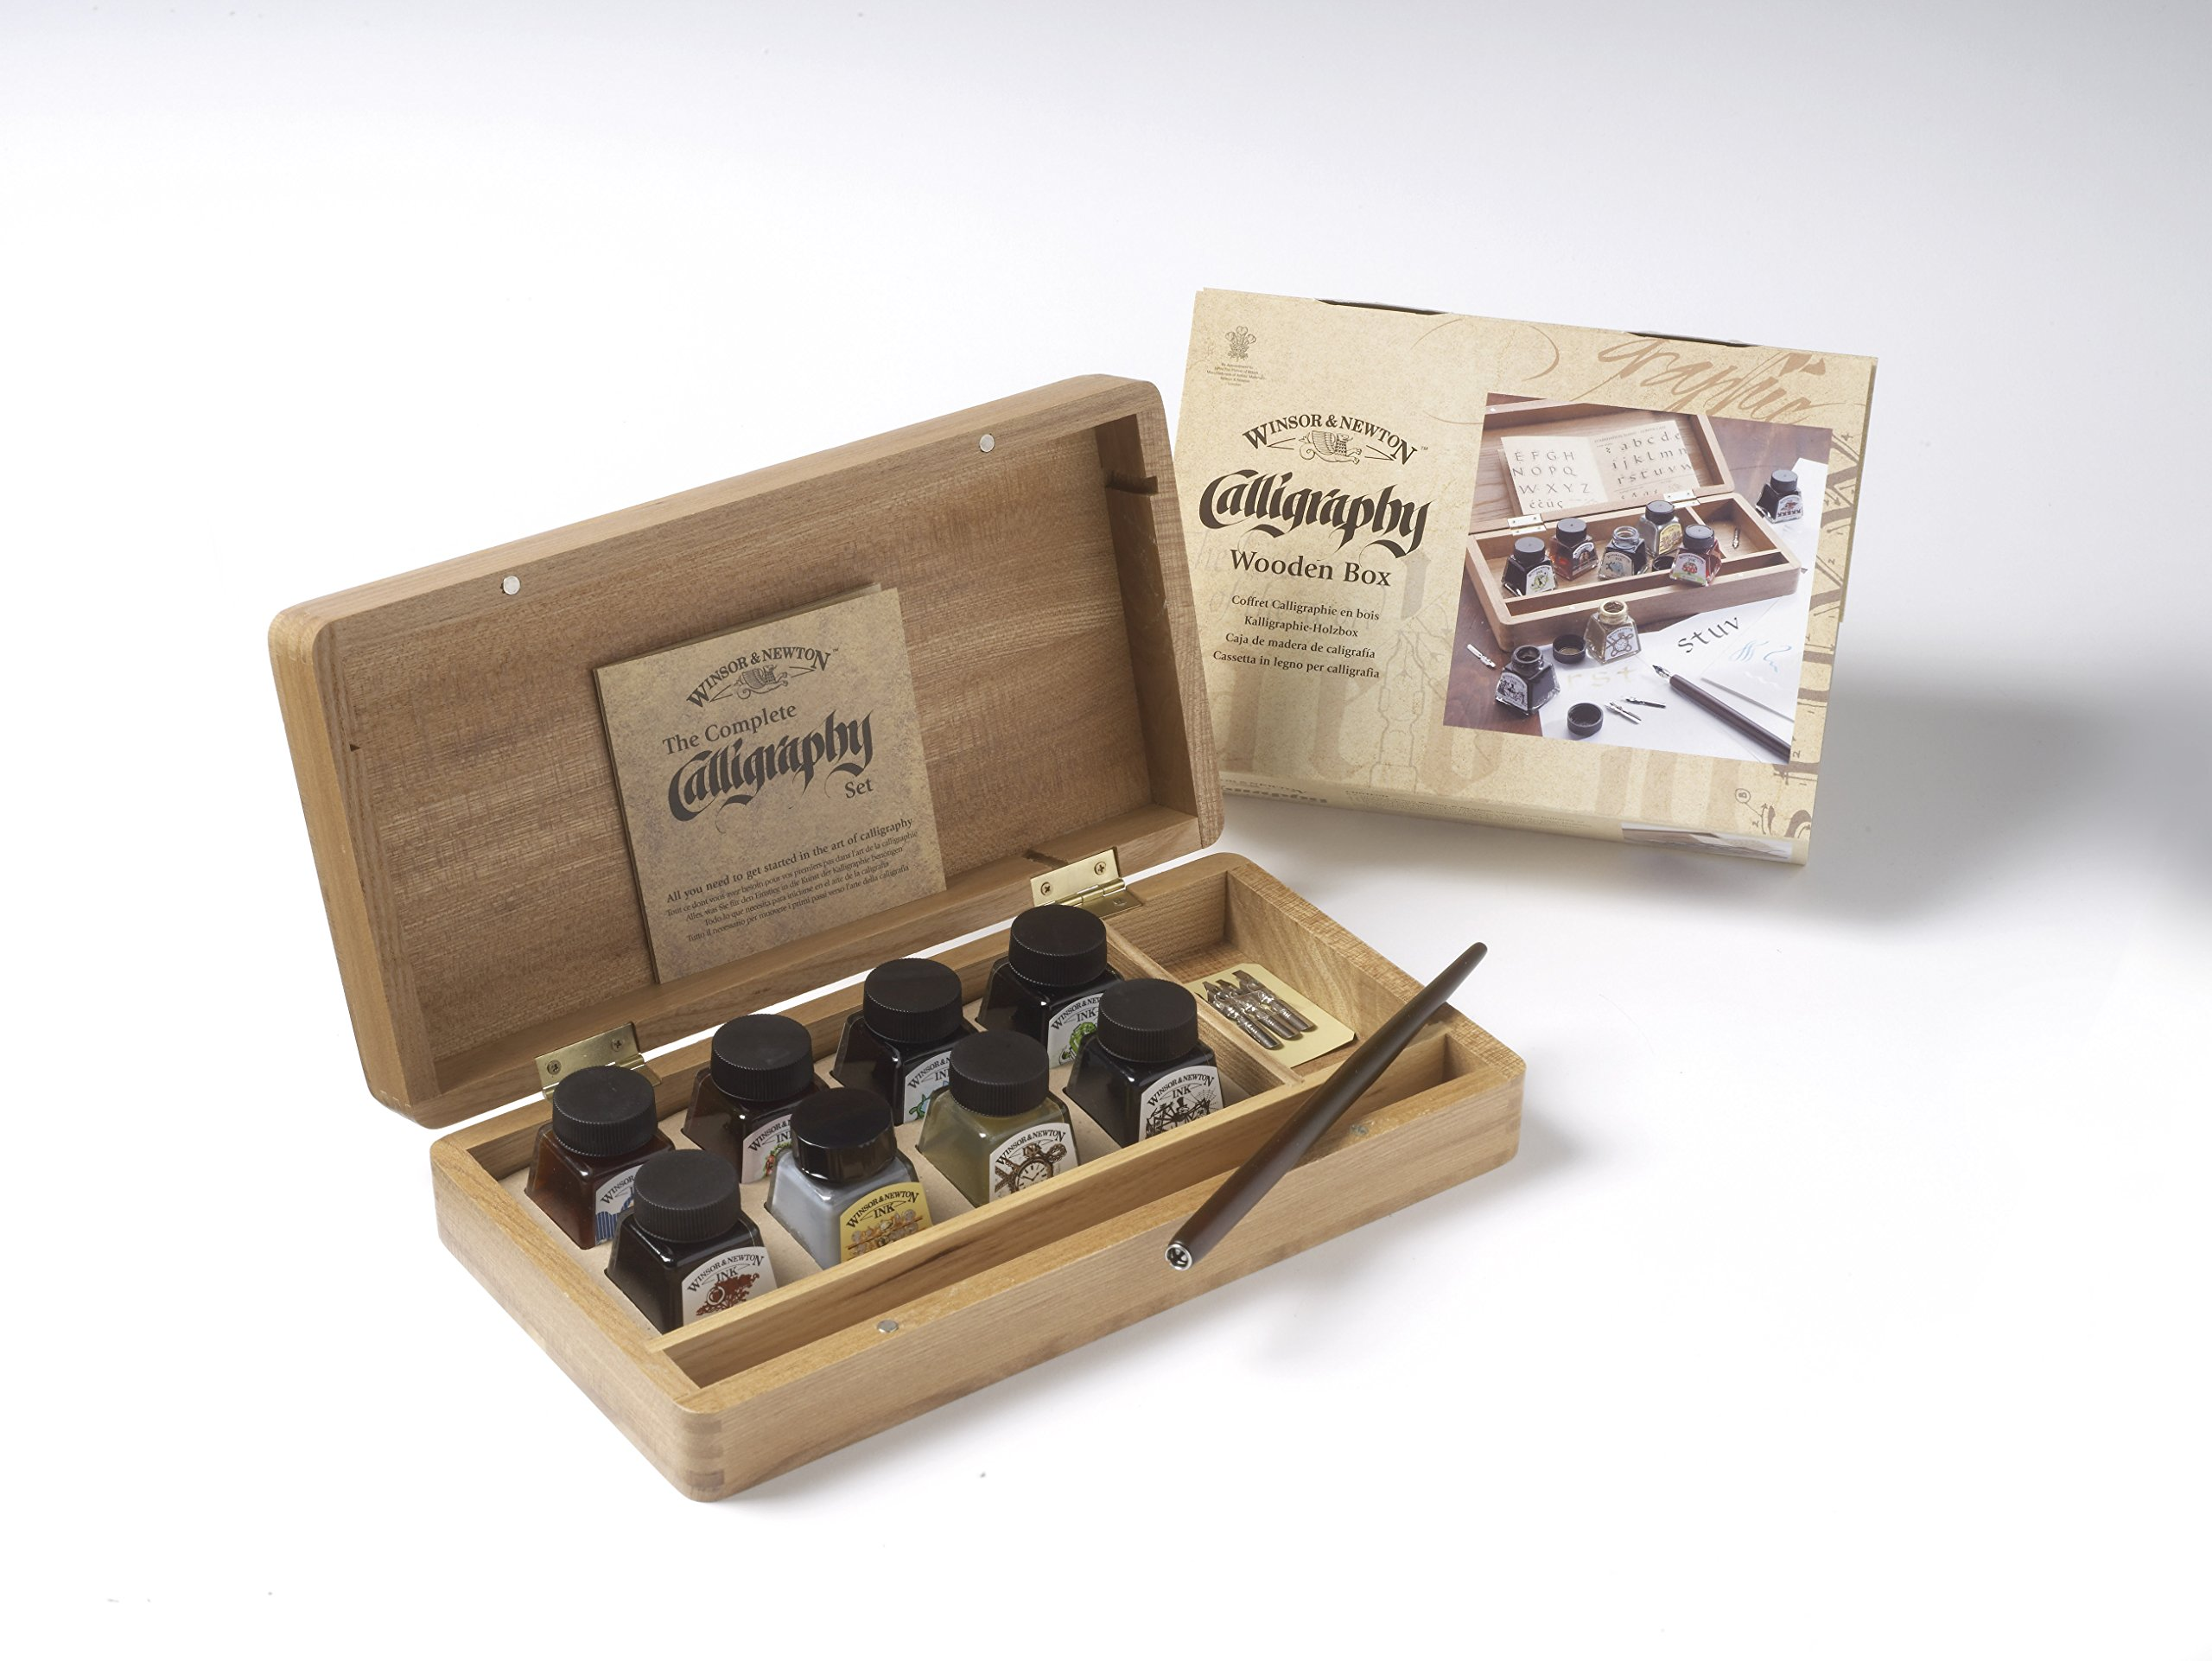 Winsor & Newton Calligraphy Wooden Box